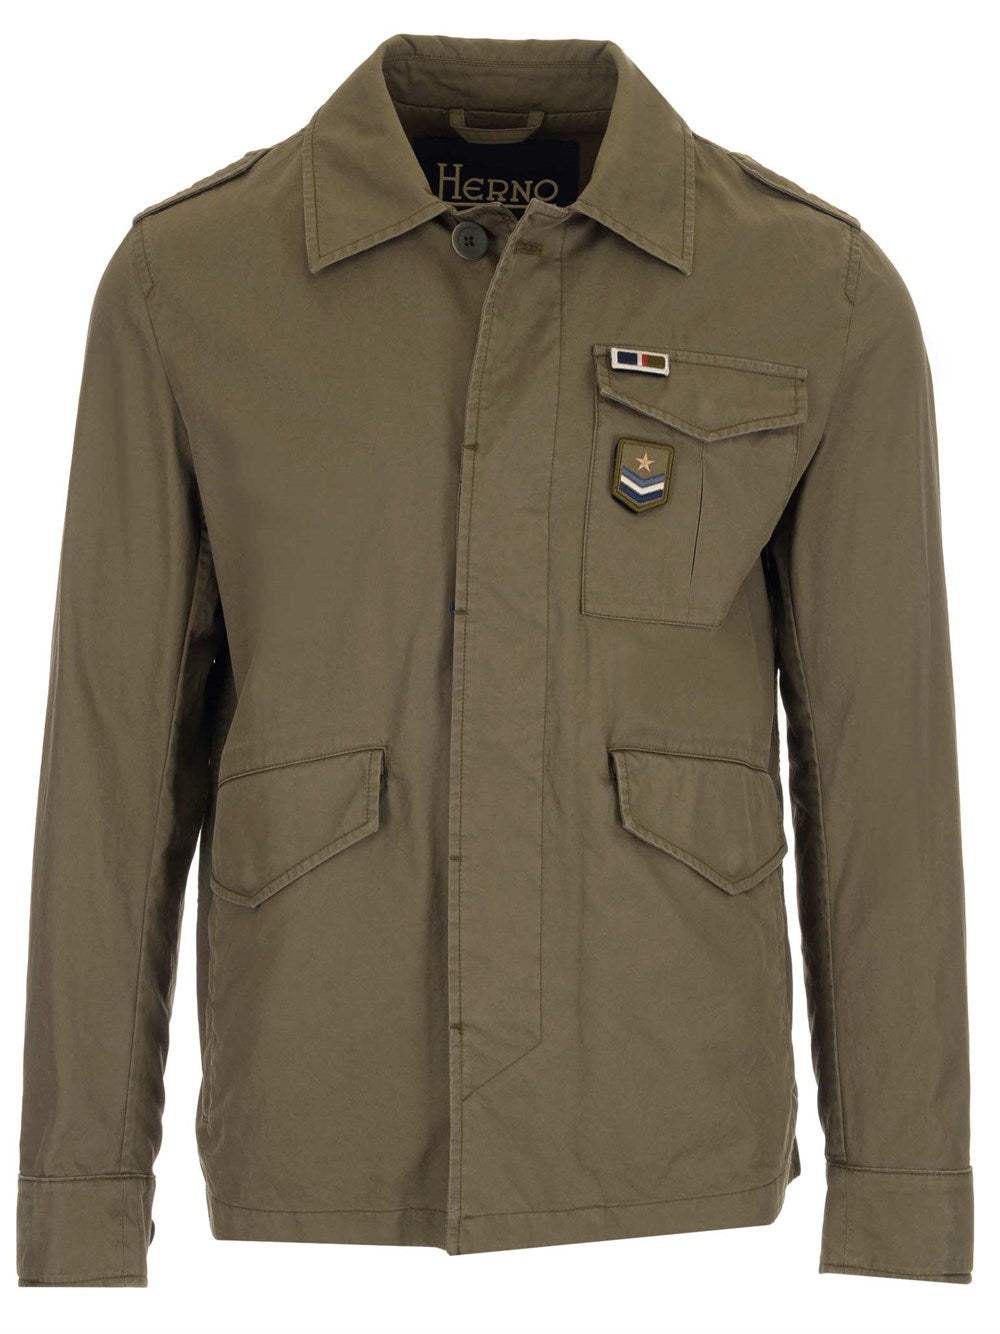 Herno HERNO PATCH MILITARY JACKET